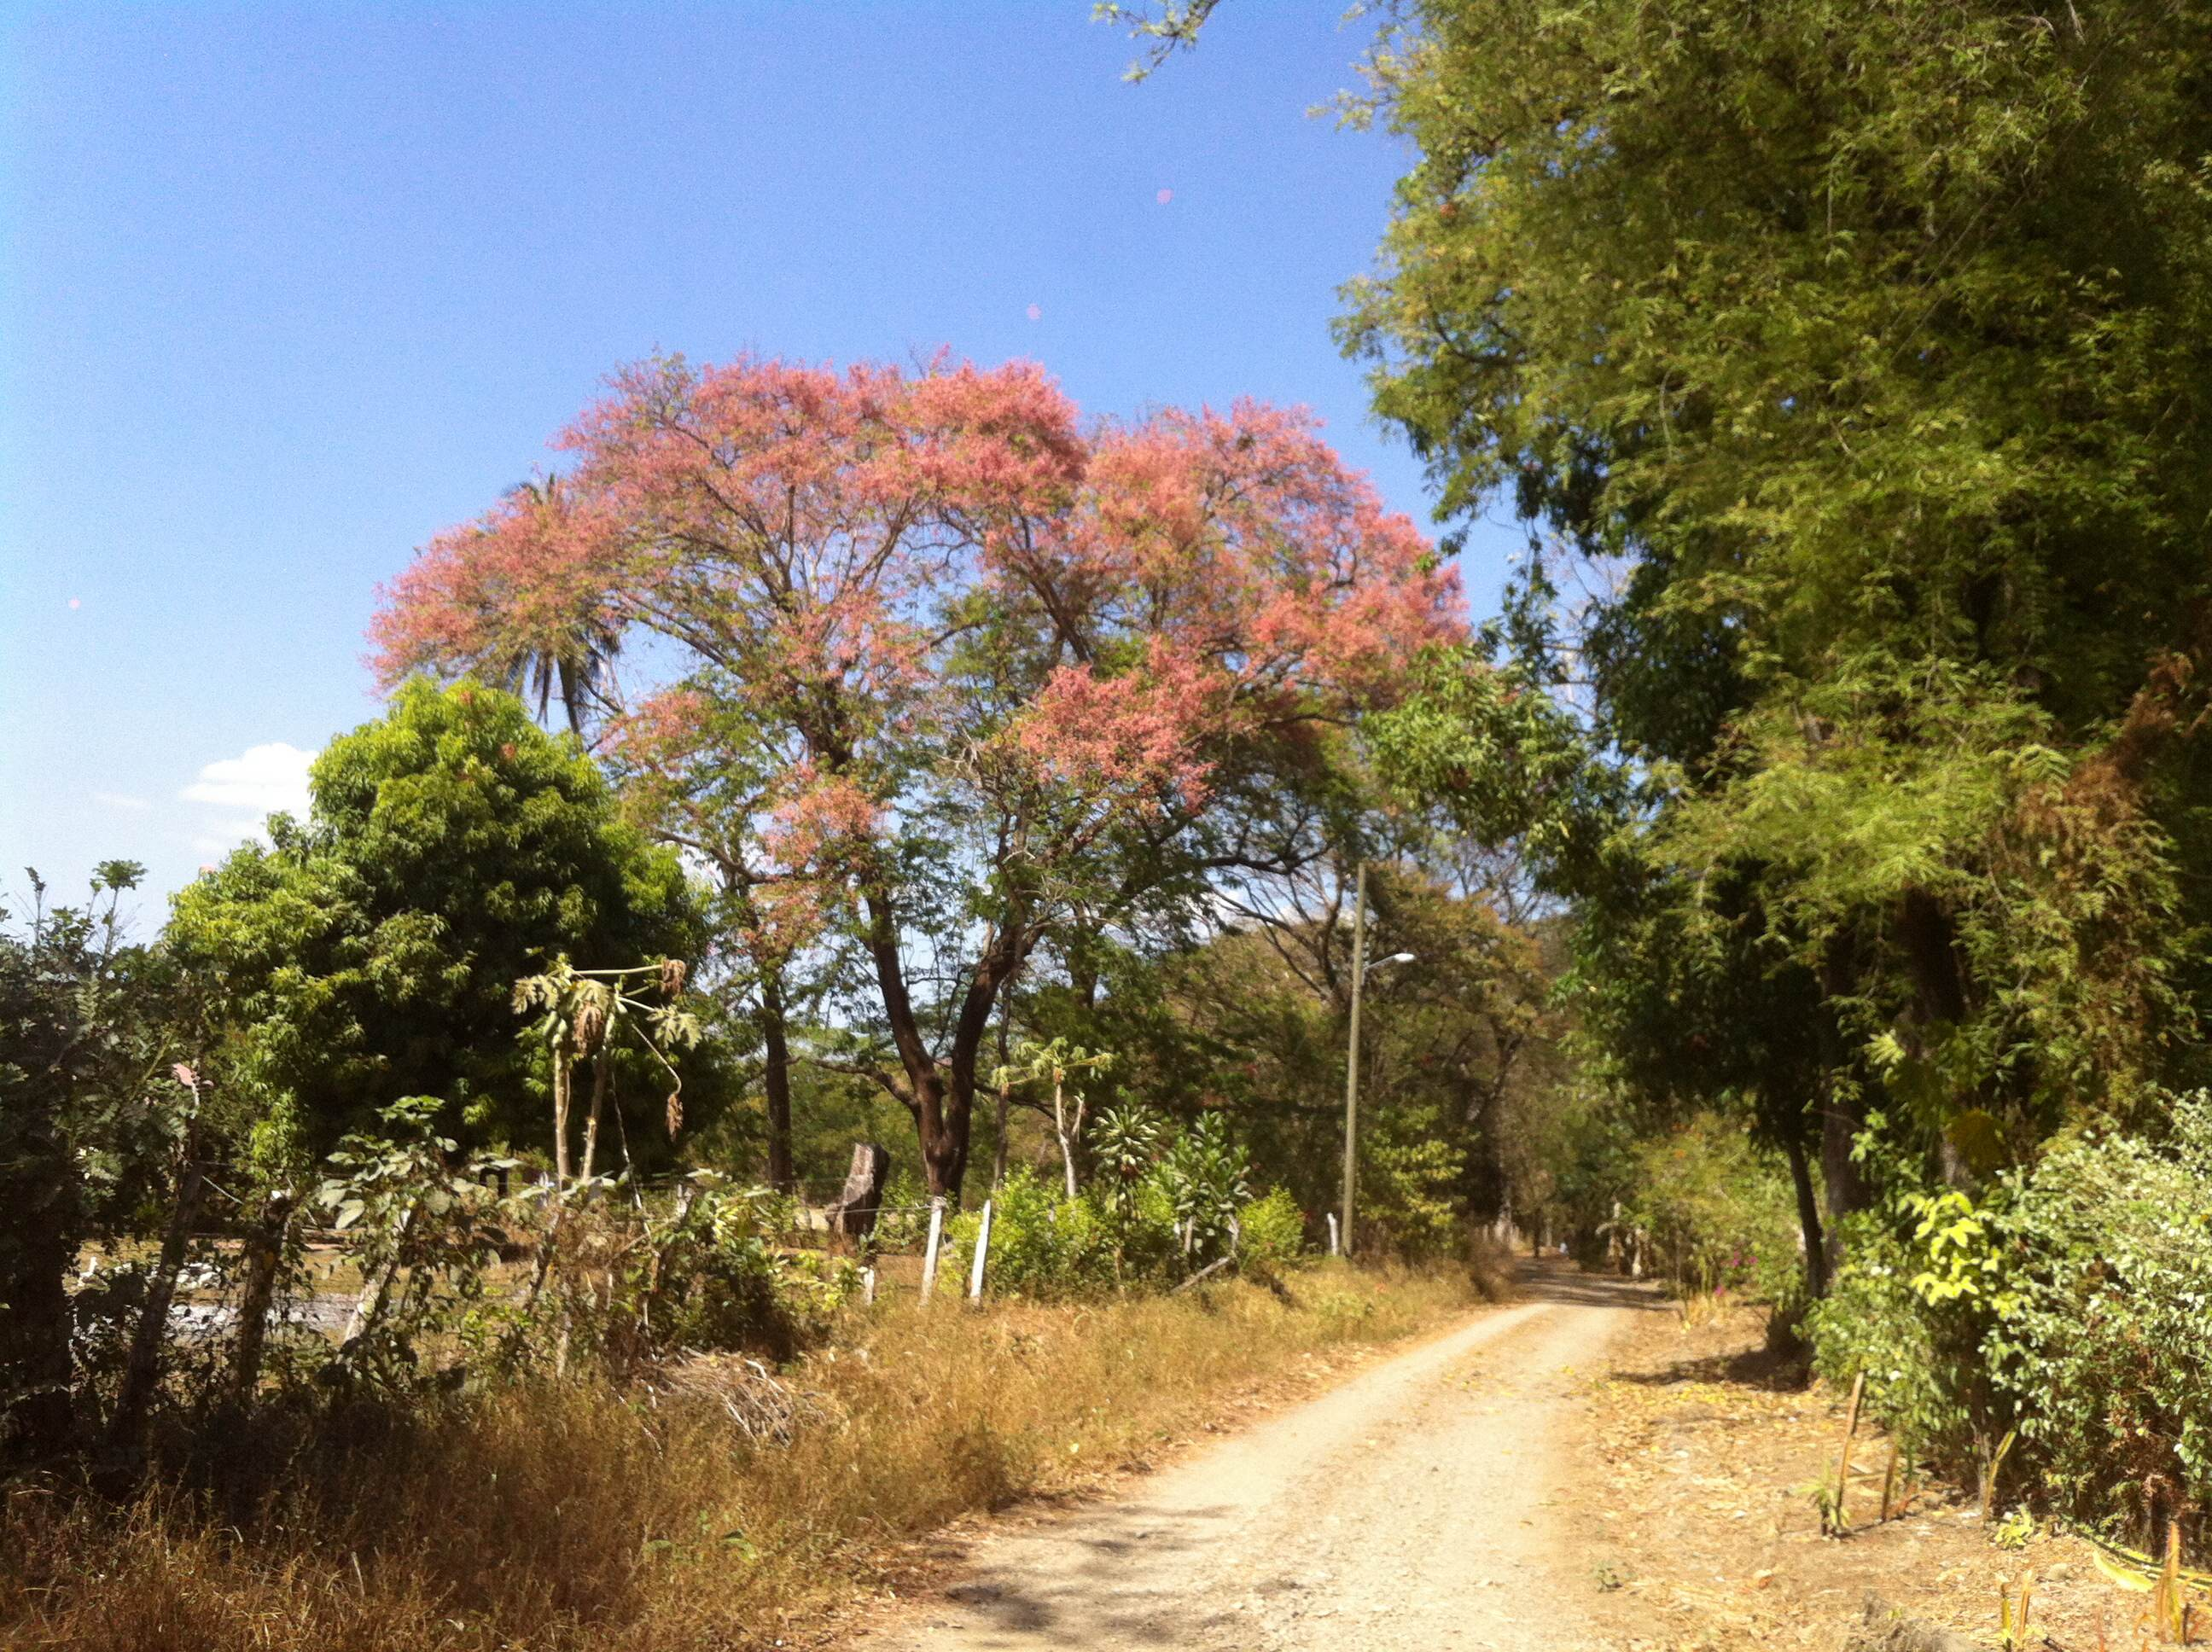 Carao tree in full bloom, late in summer